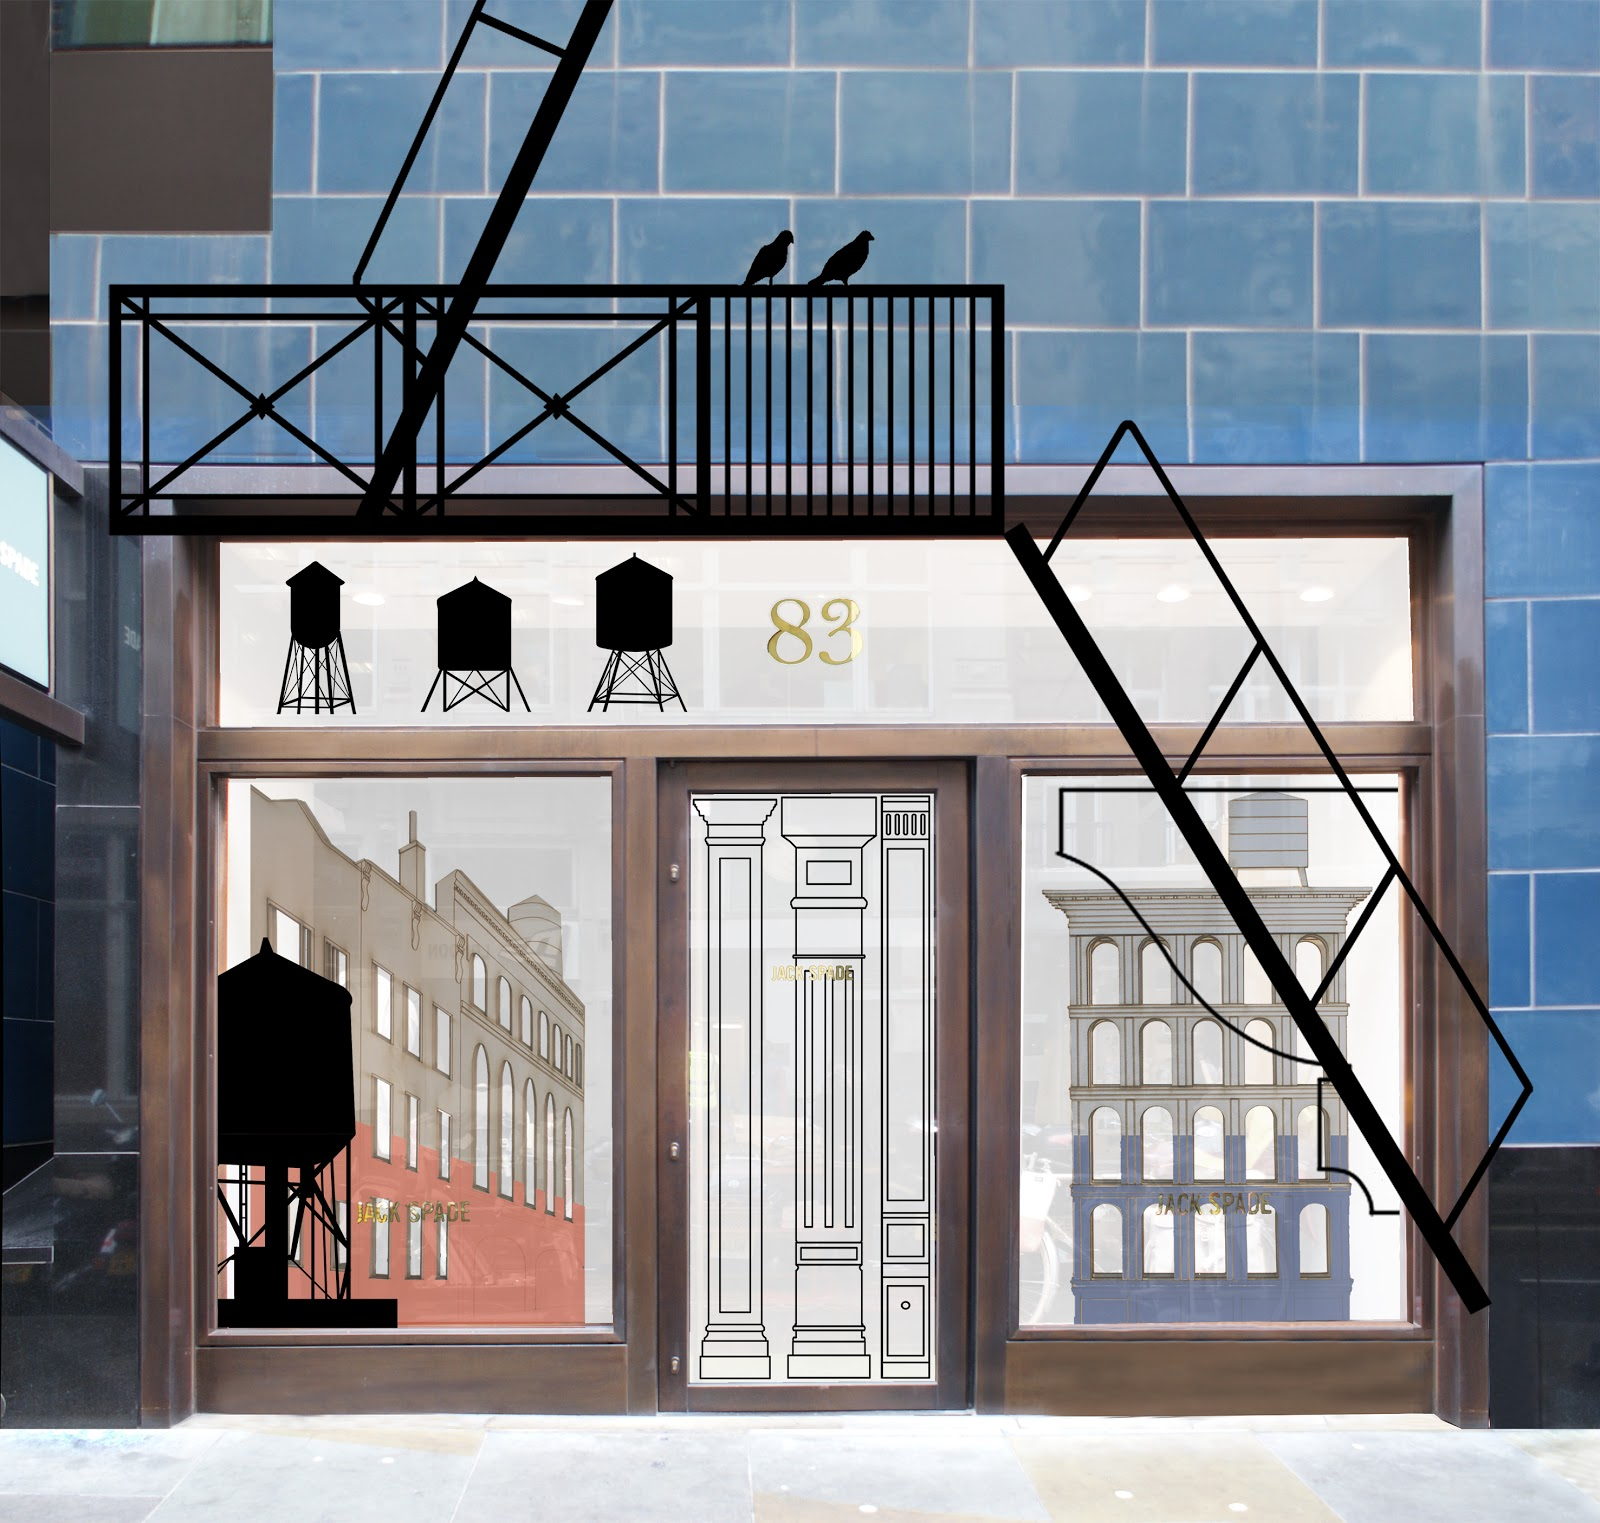 The regent street windows project 2012 - Jack Spade By Carl Turner Architects